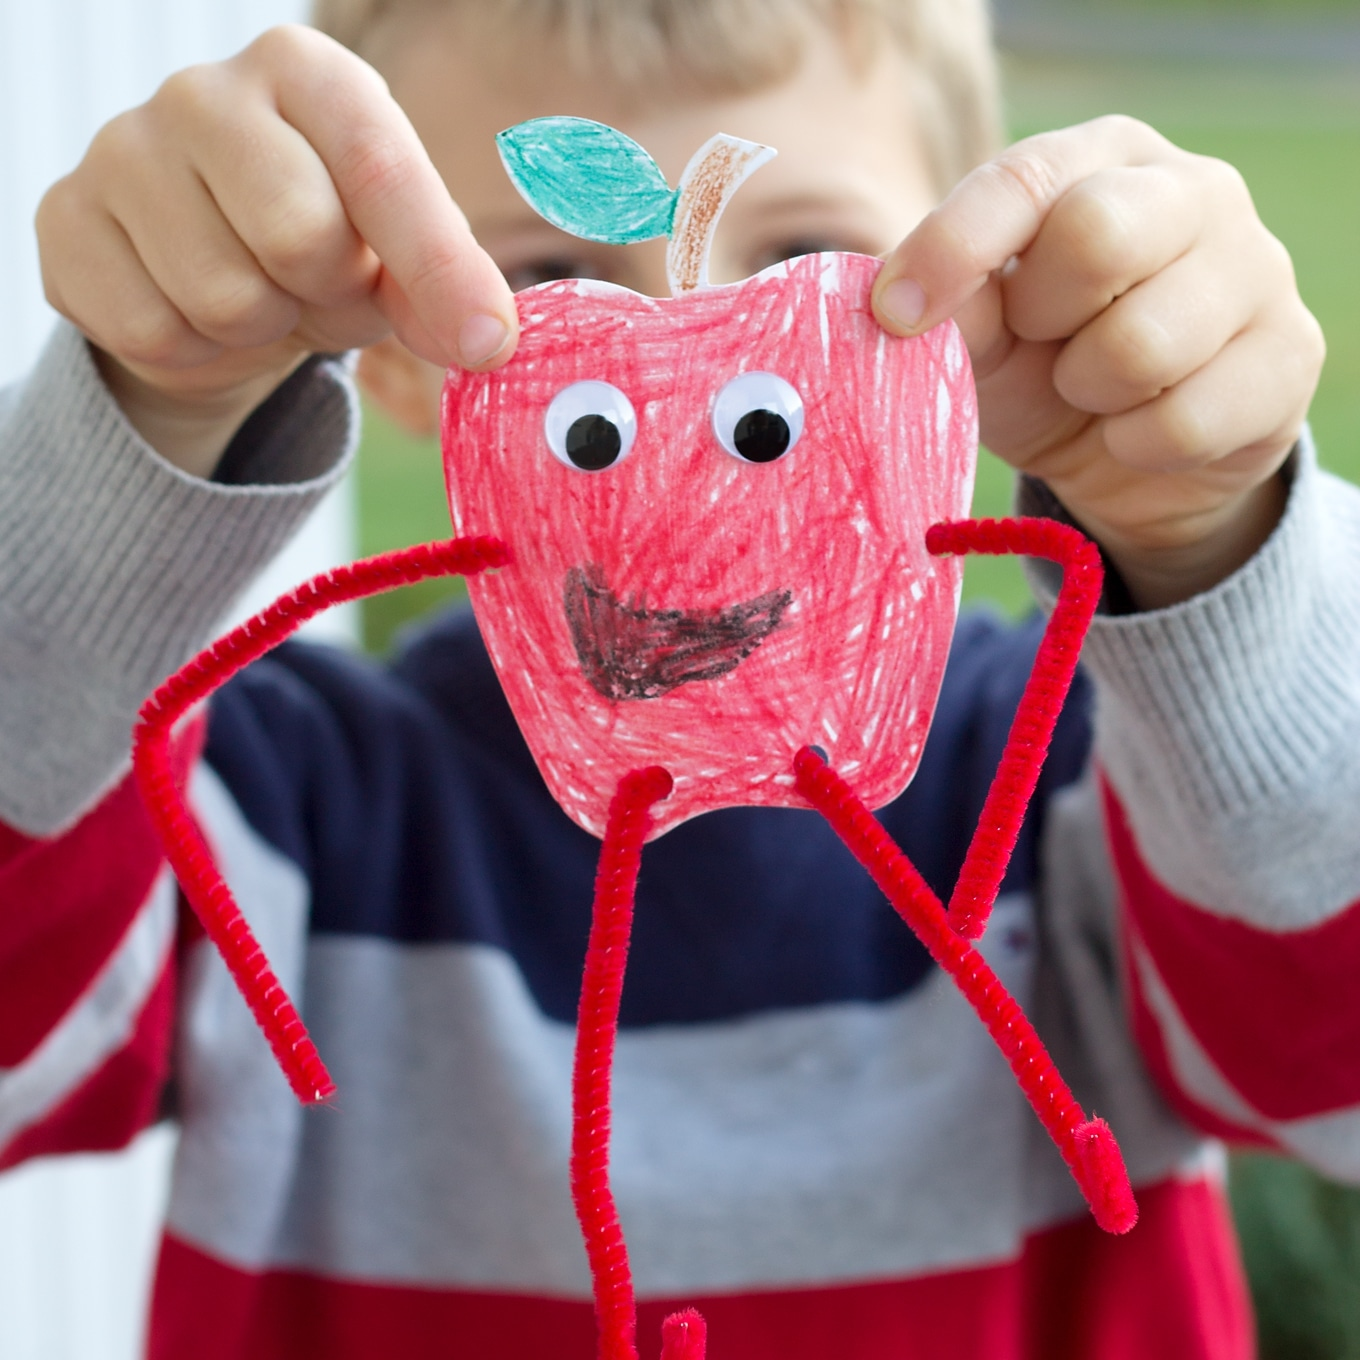 Child Holding Paper Apple Craft